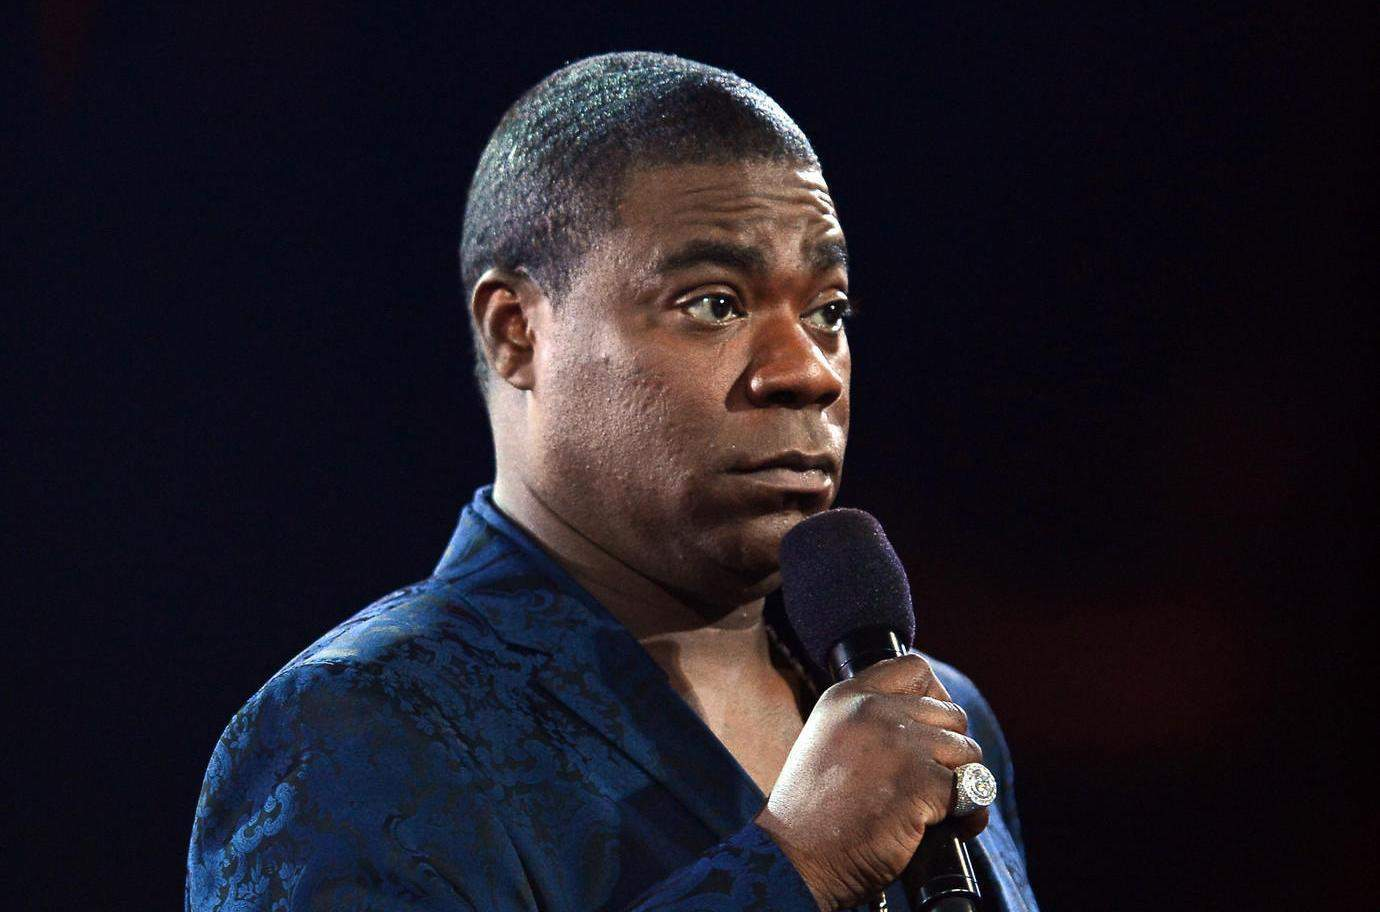 tracy-morgan-tbs